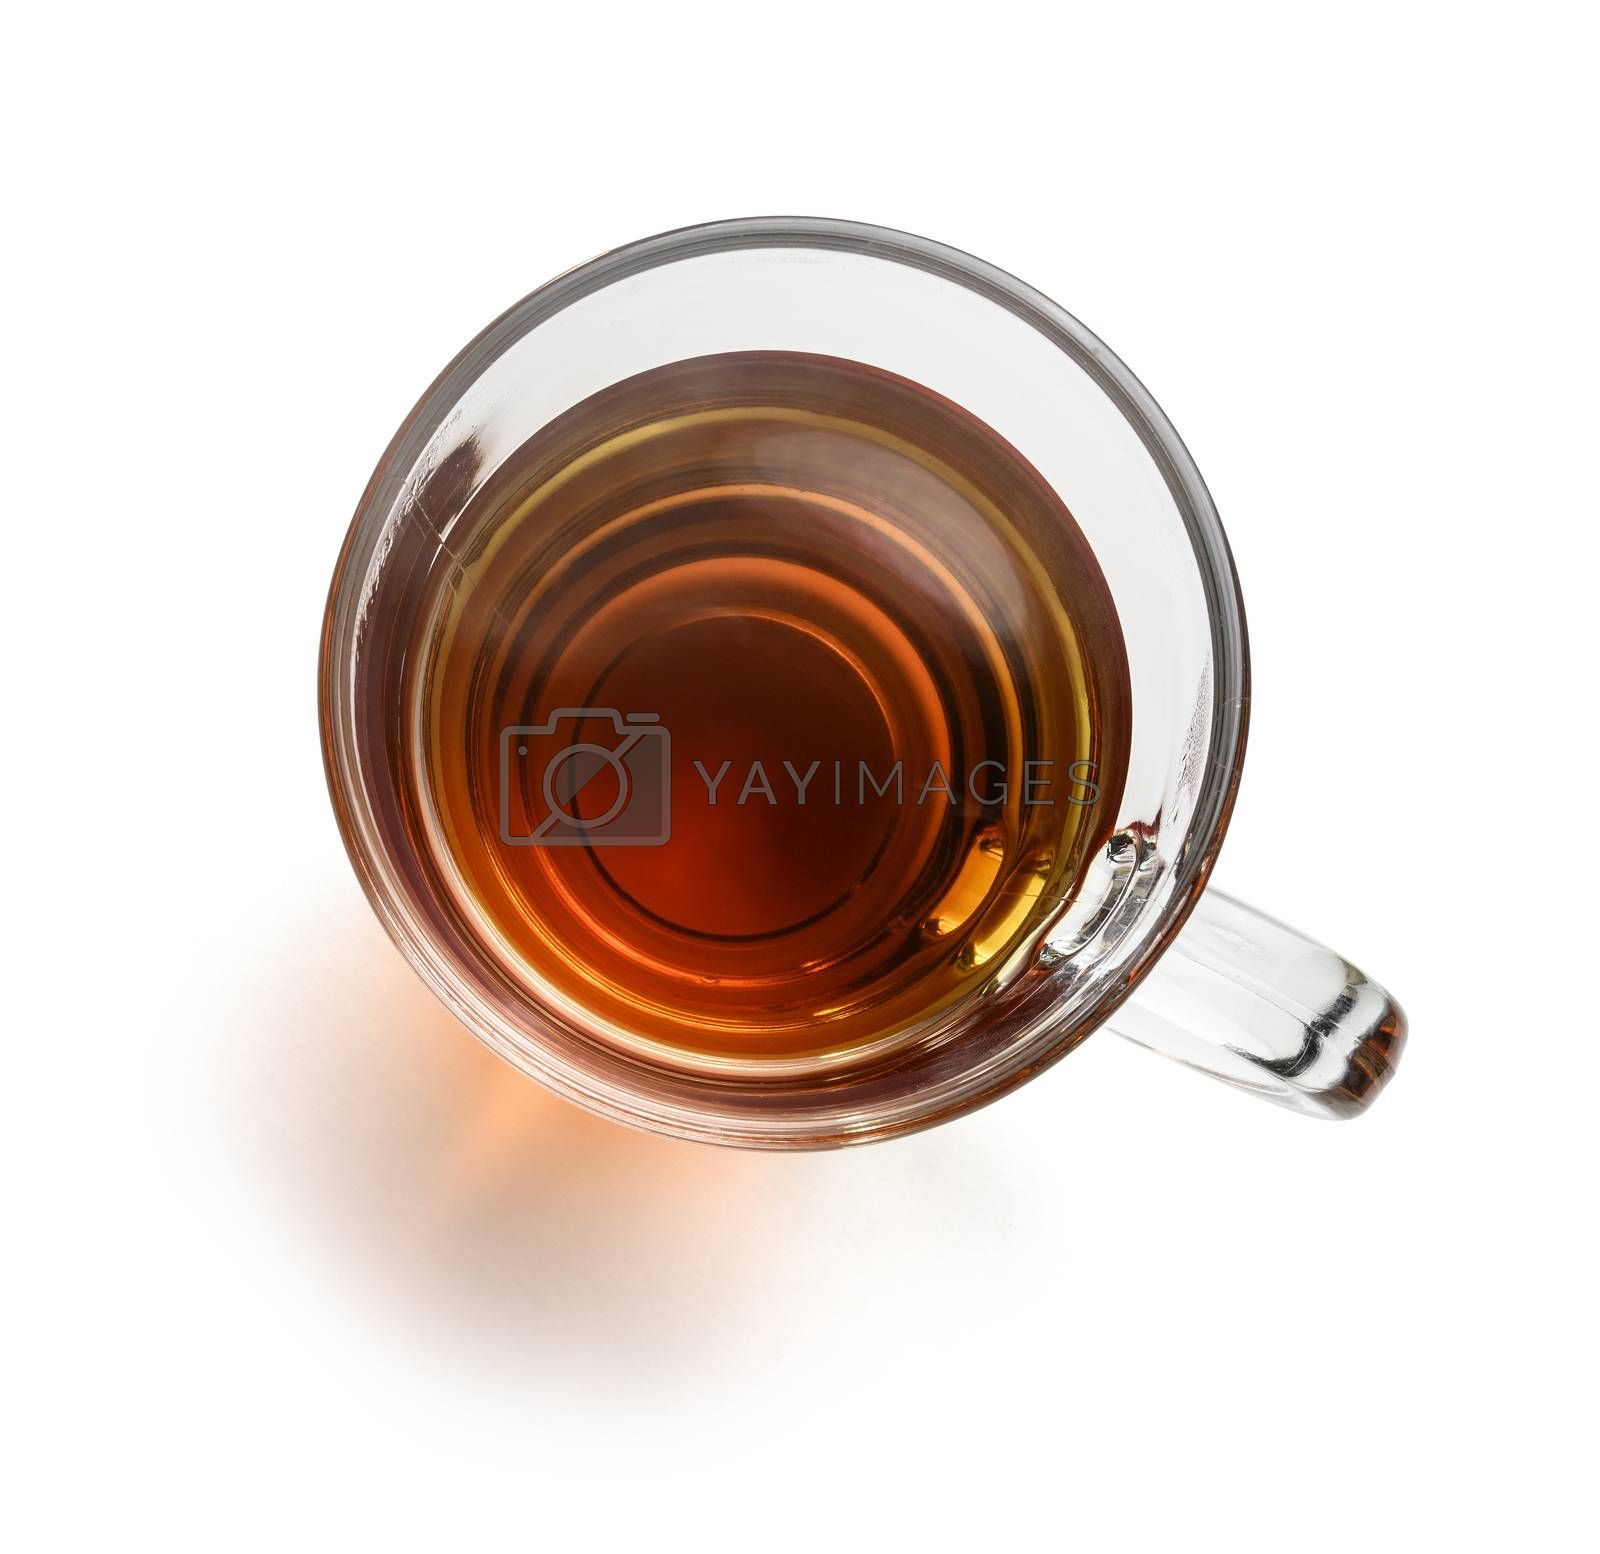 Tea in a glass mug on a white background. The view from the top.